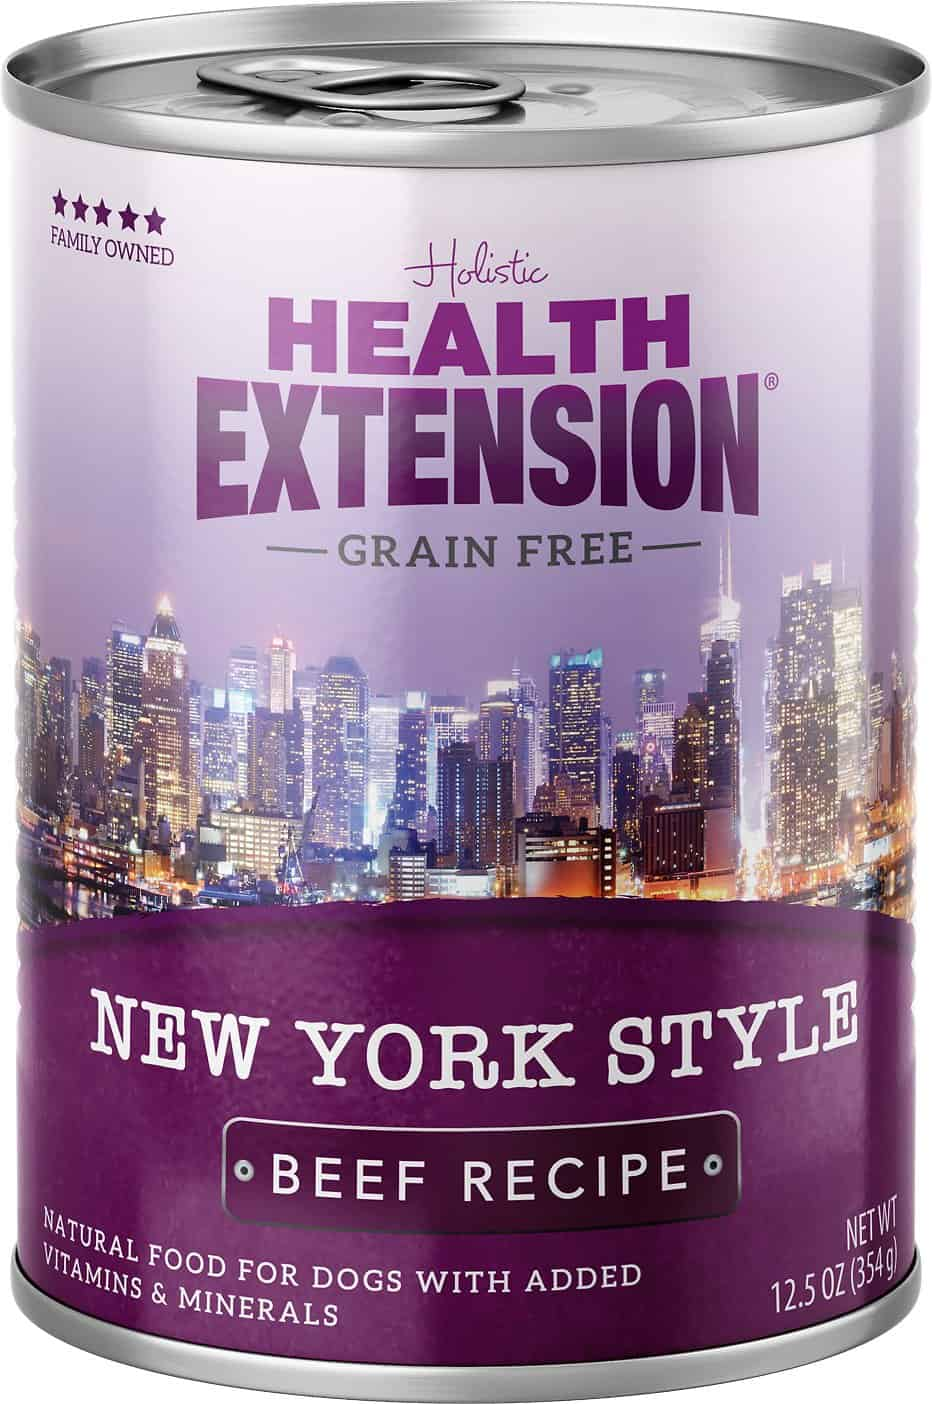 Health Extension Dog Food Review 2020: Better Dog Food Option? 17